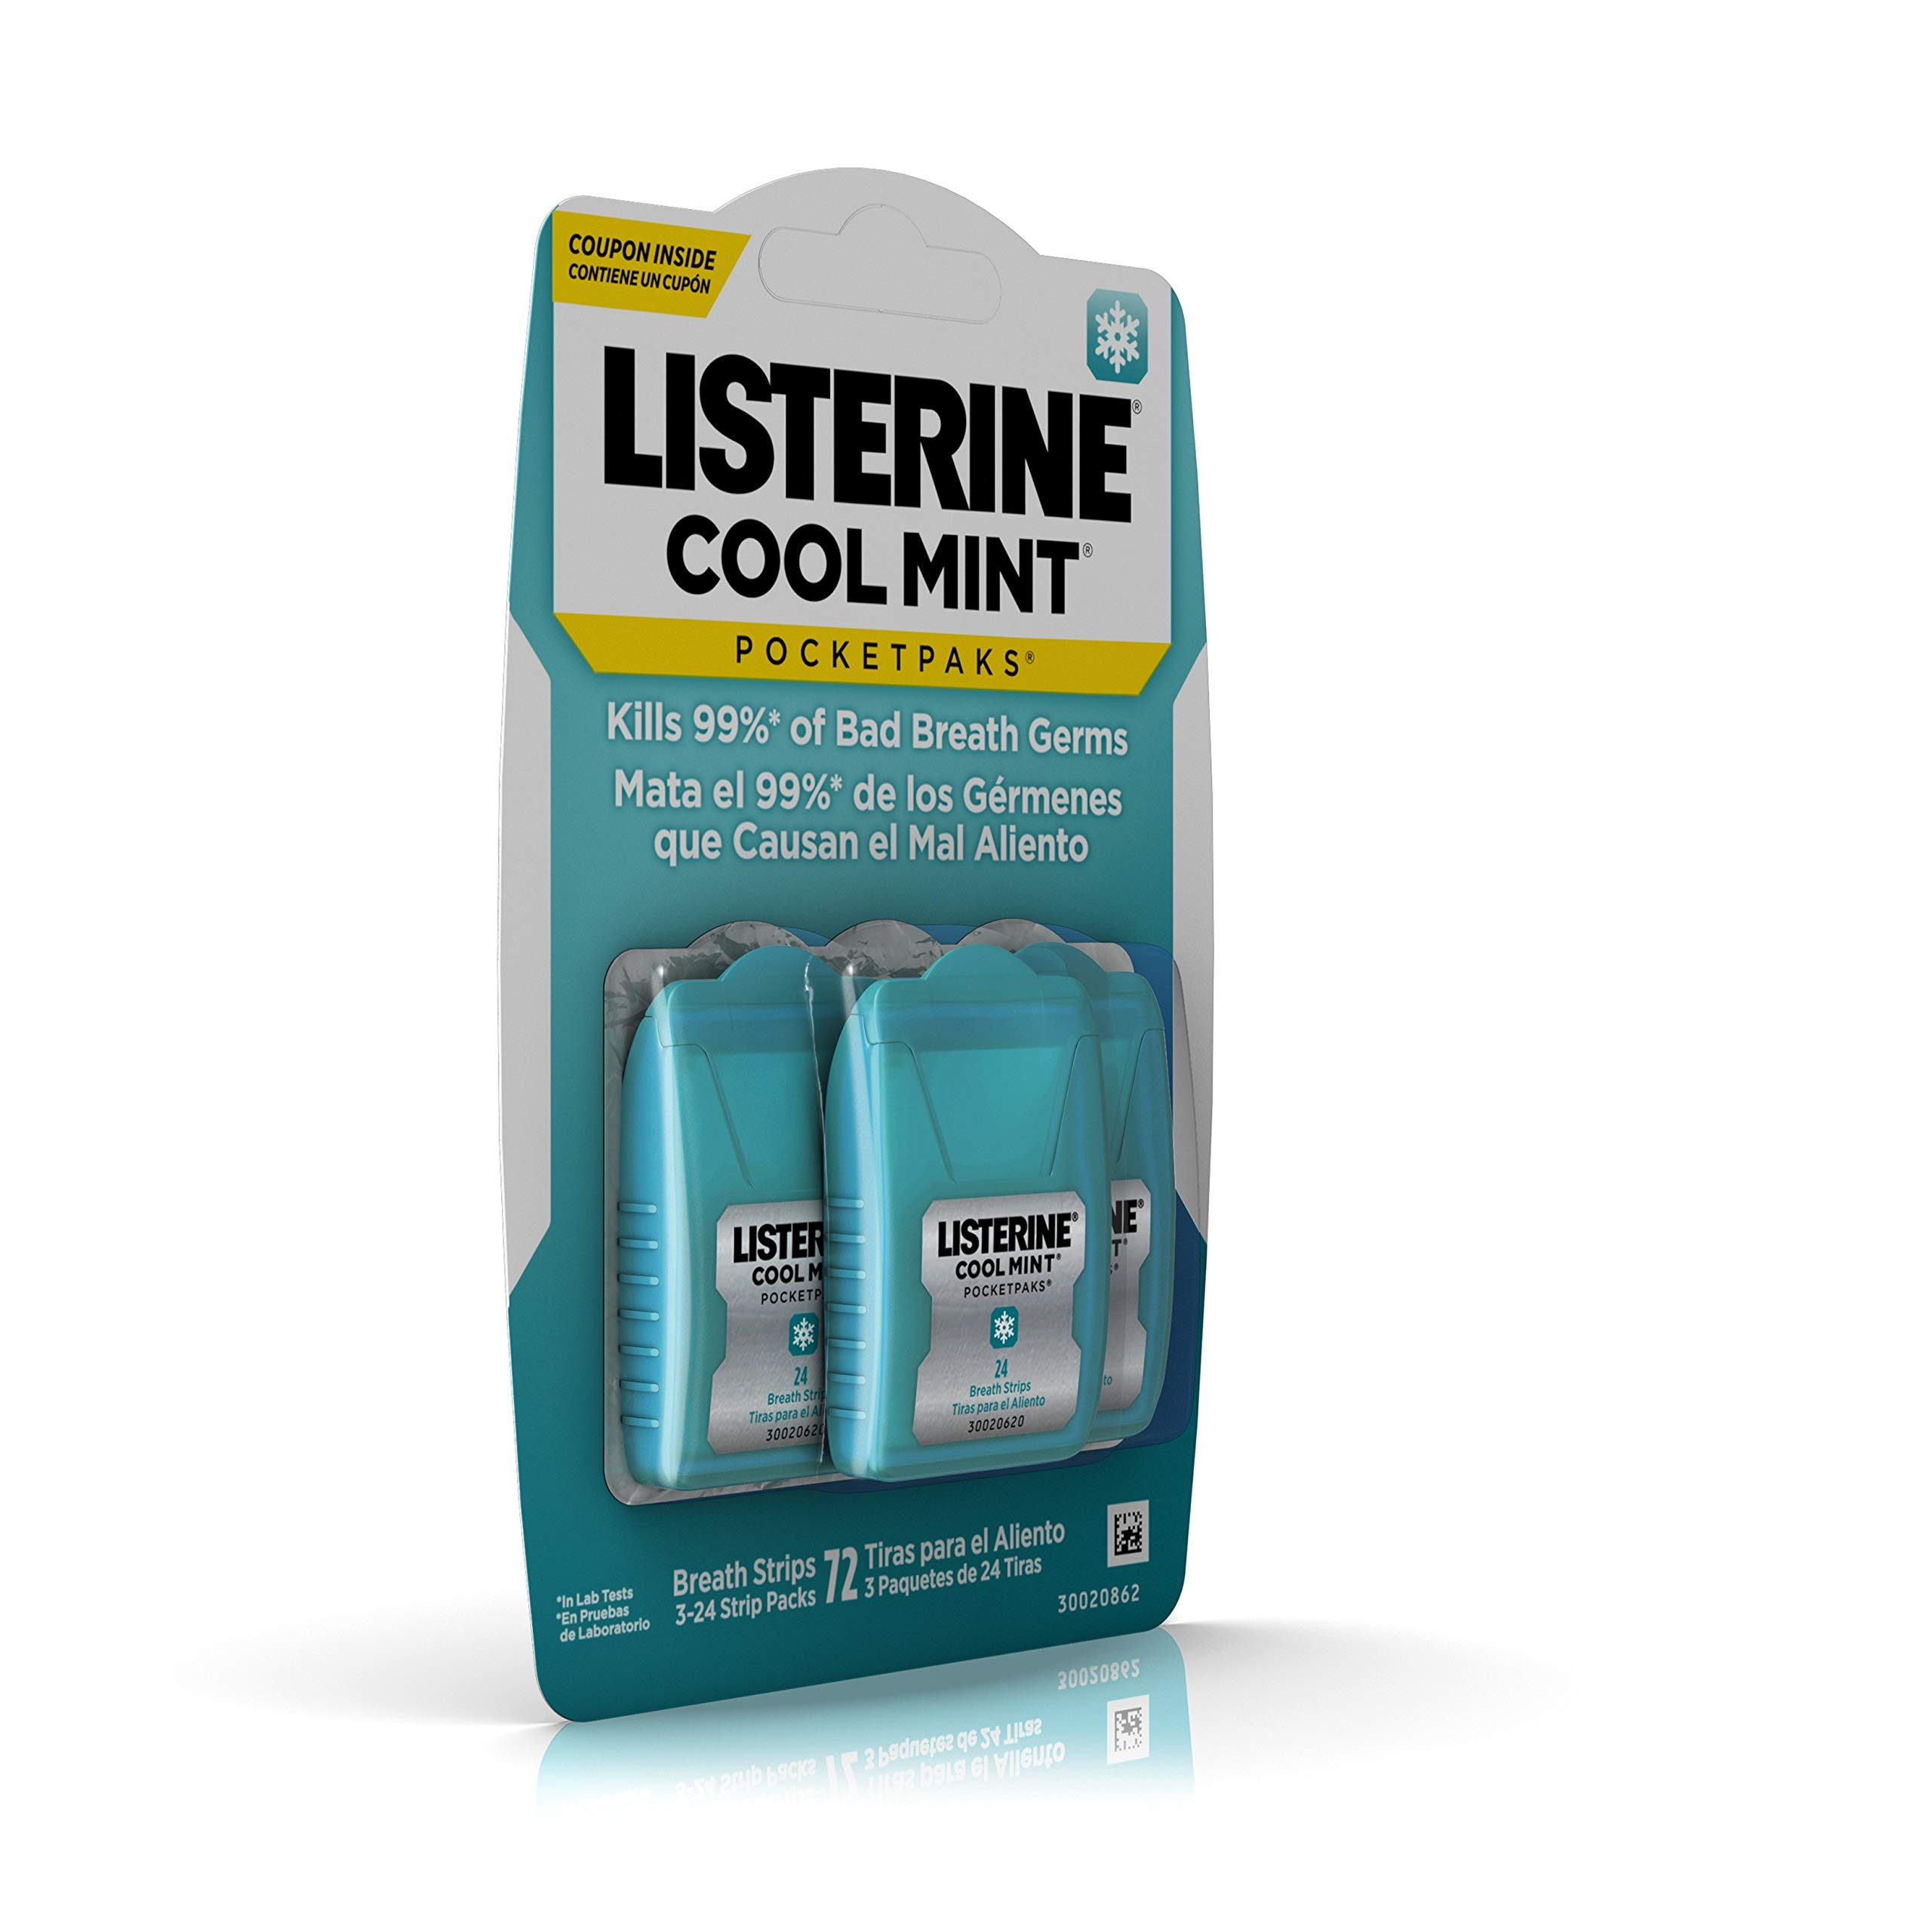 Listerine Cool Mint Pocketpaks Breath Strips Kills Bad Breath Germs, 24-Strip Pack, 3 Count (Pack Of 6) by Listerine (Image #3)